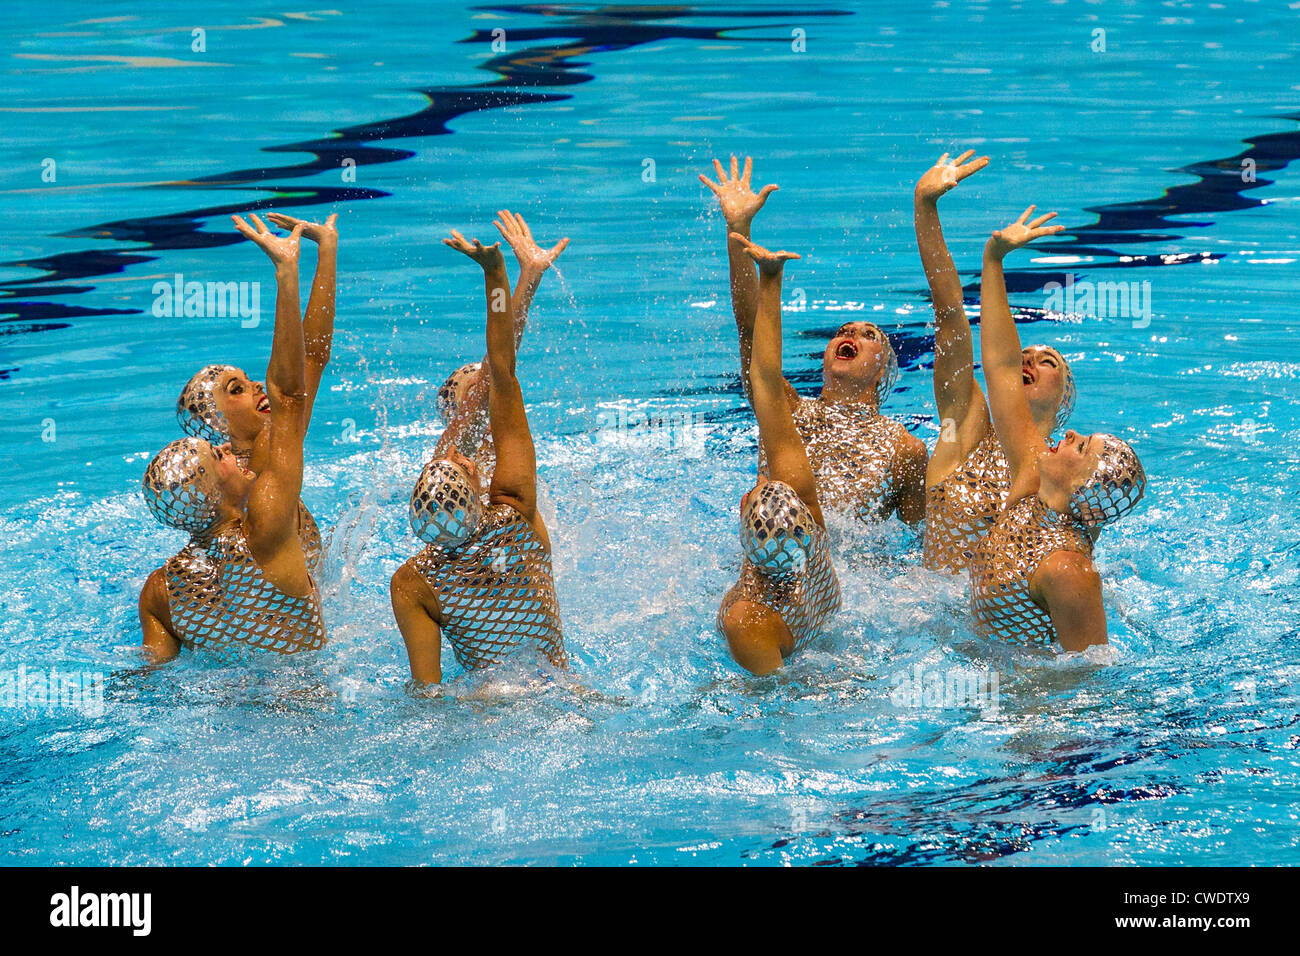 Spanish Synchronized Swimming team at the Olympic Summer Games, London 2012 - Stock Image